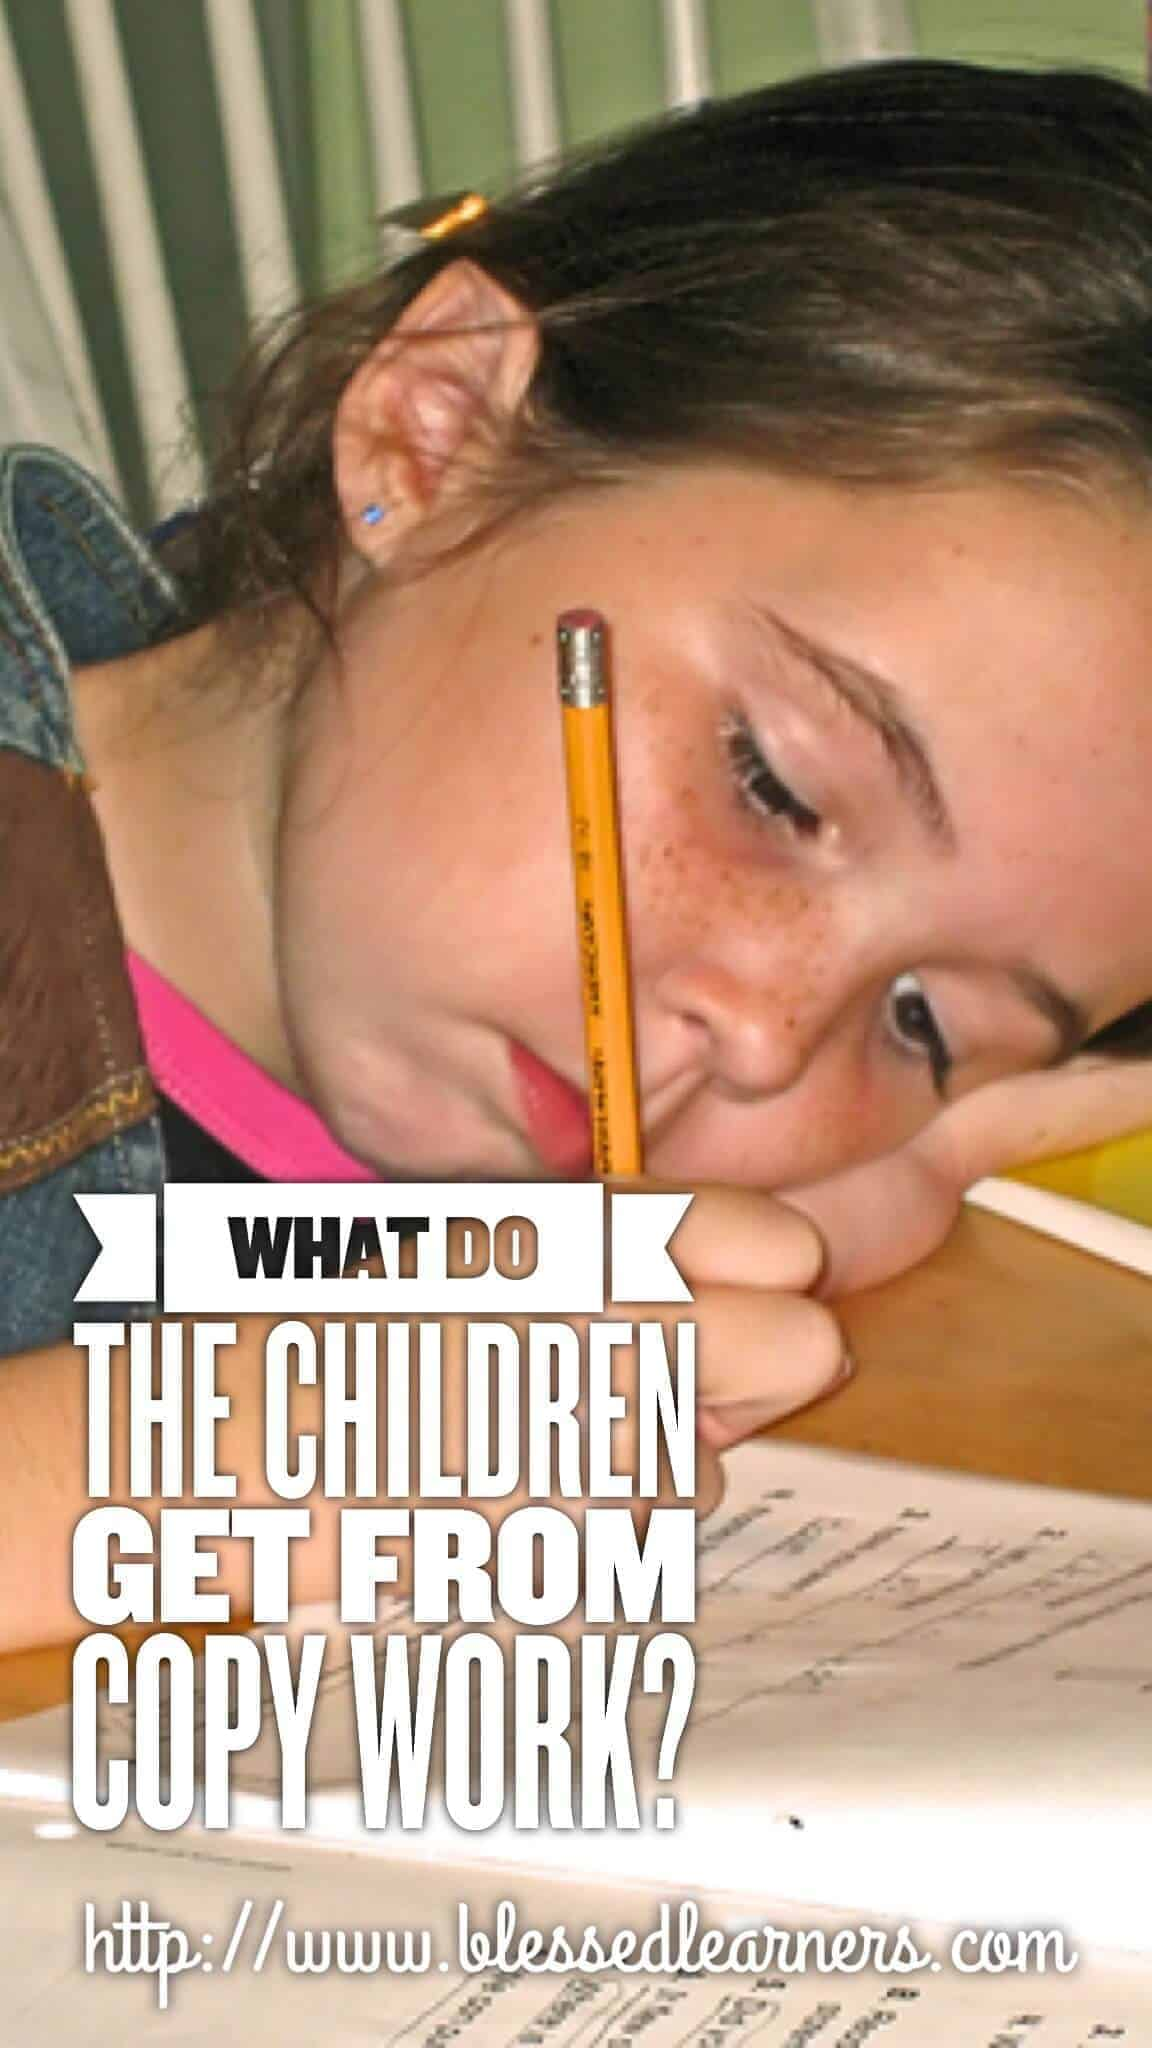 What Do The Children Get From Copy Work?